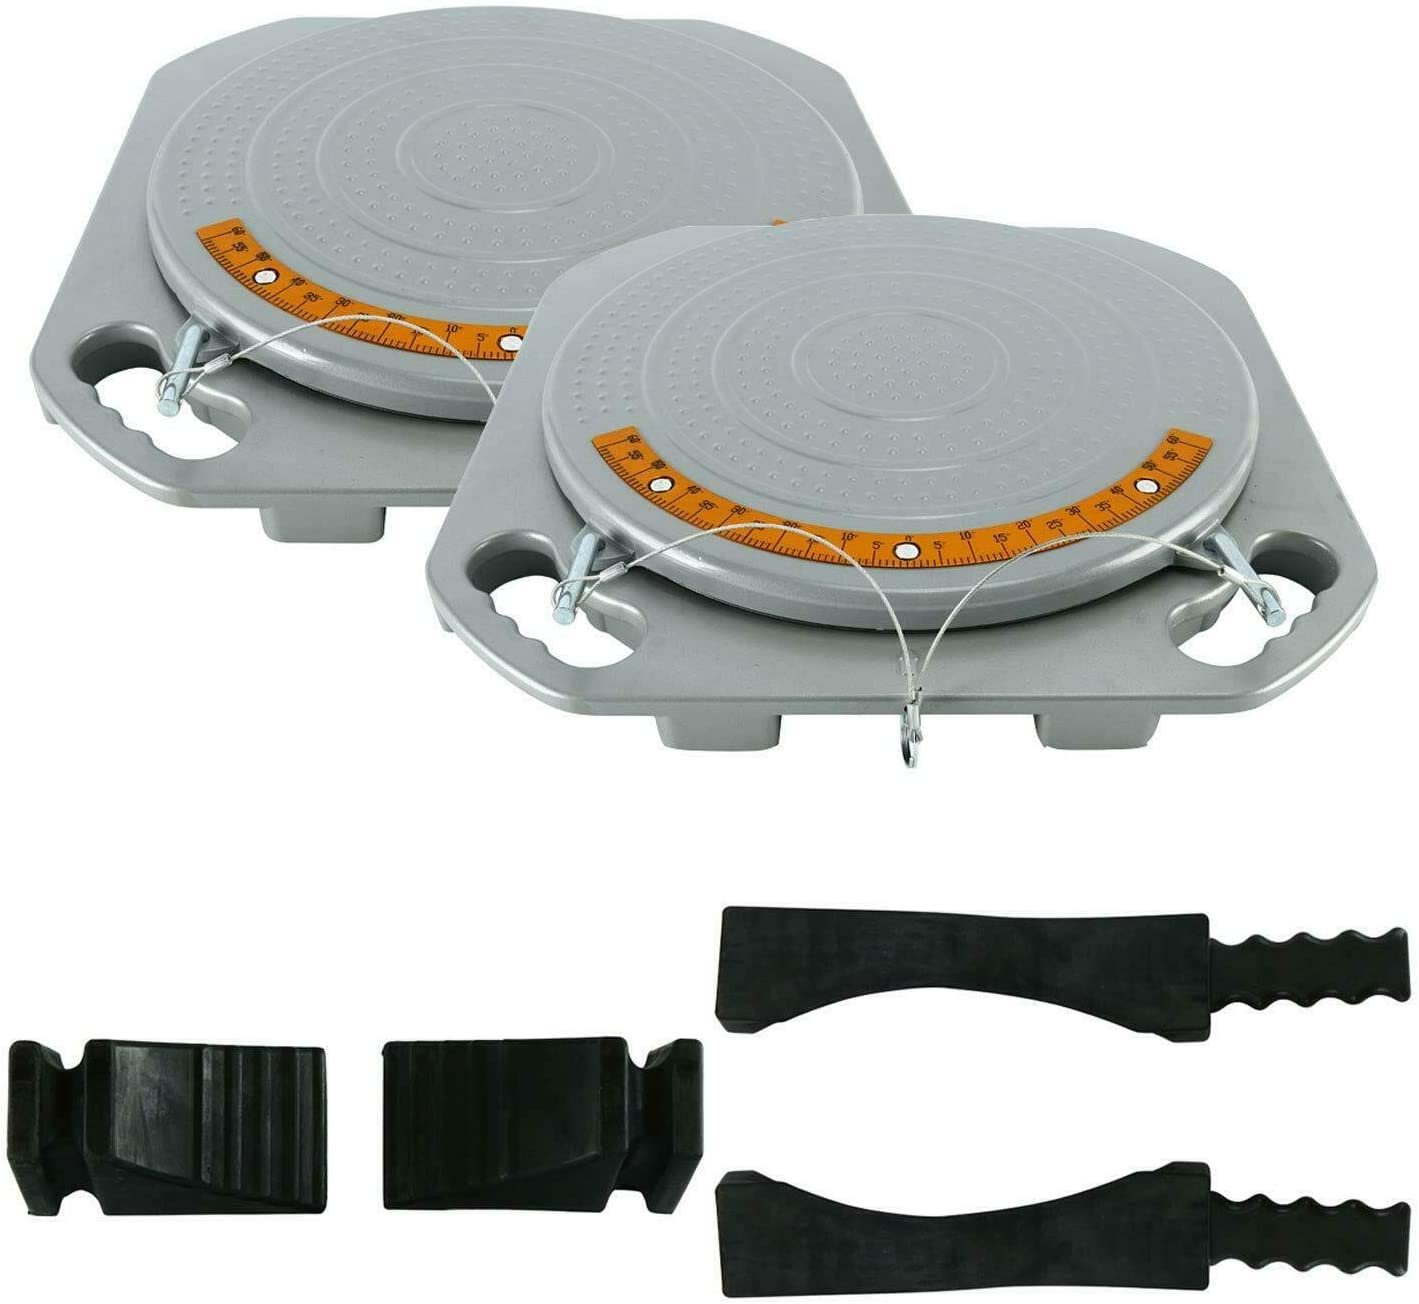 PMD Products Pair Max 45% OFF Wheel Alignment Turntable 000 Plates P Many popular brands 10 Turn